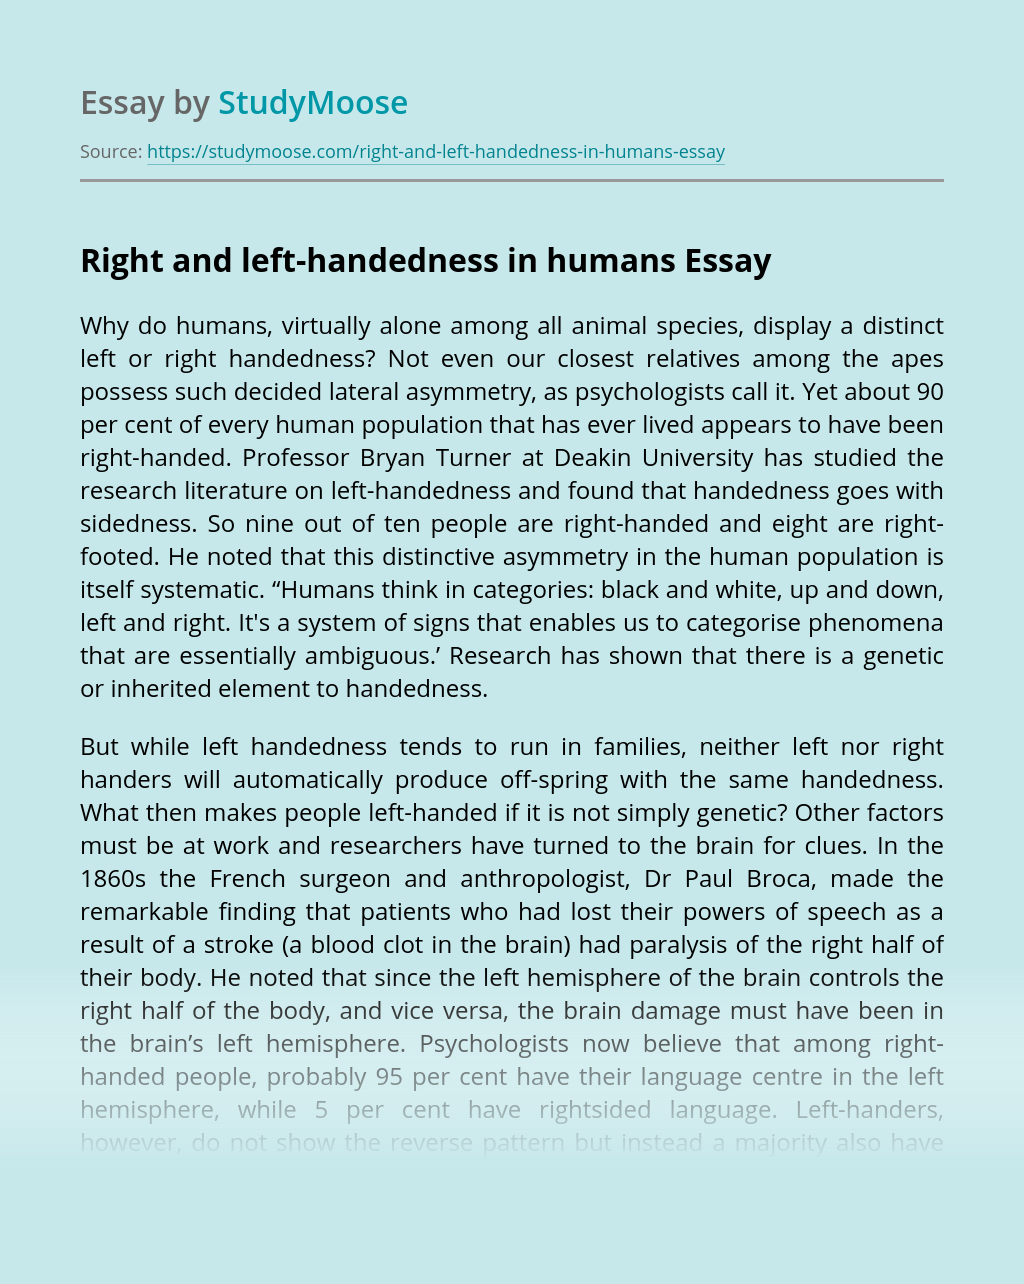 Right and left-handedness in humans